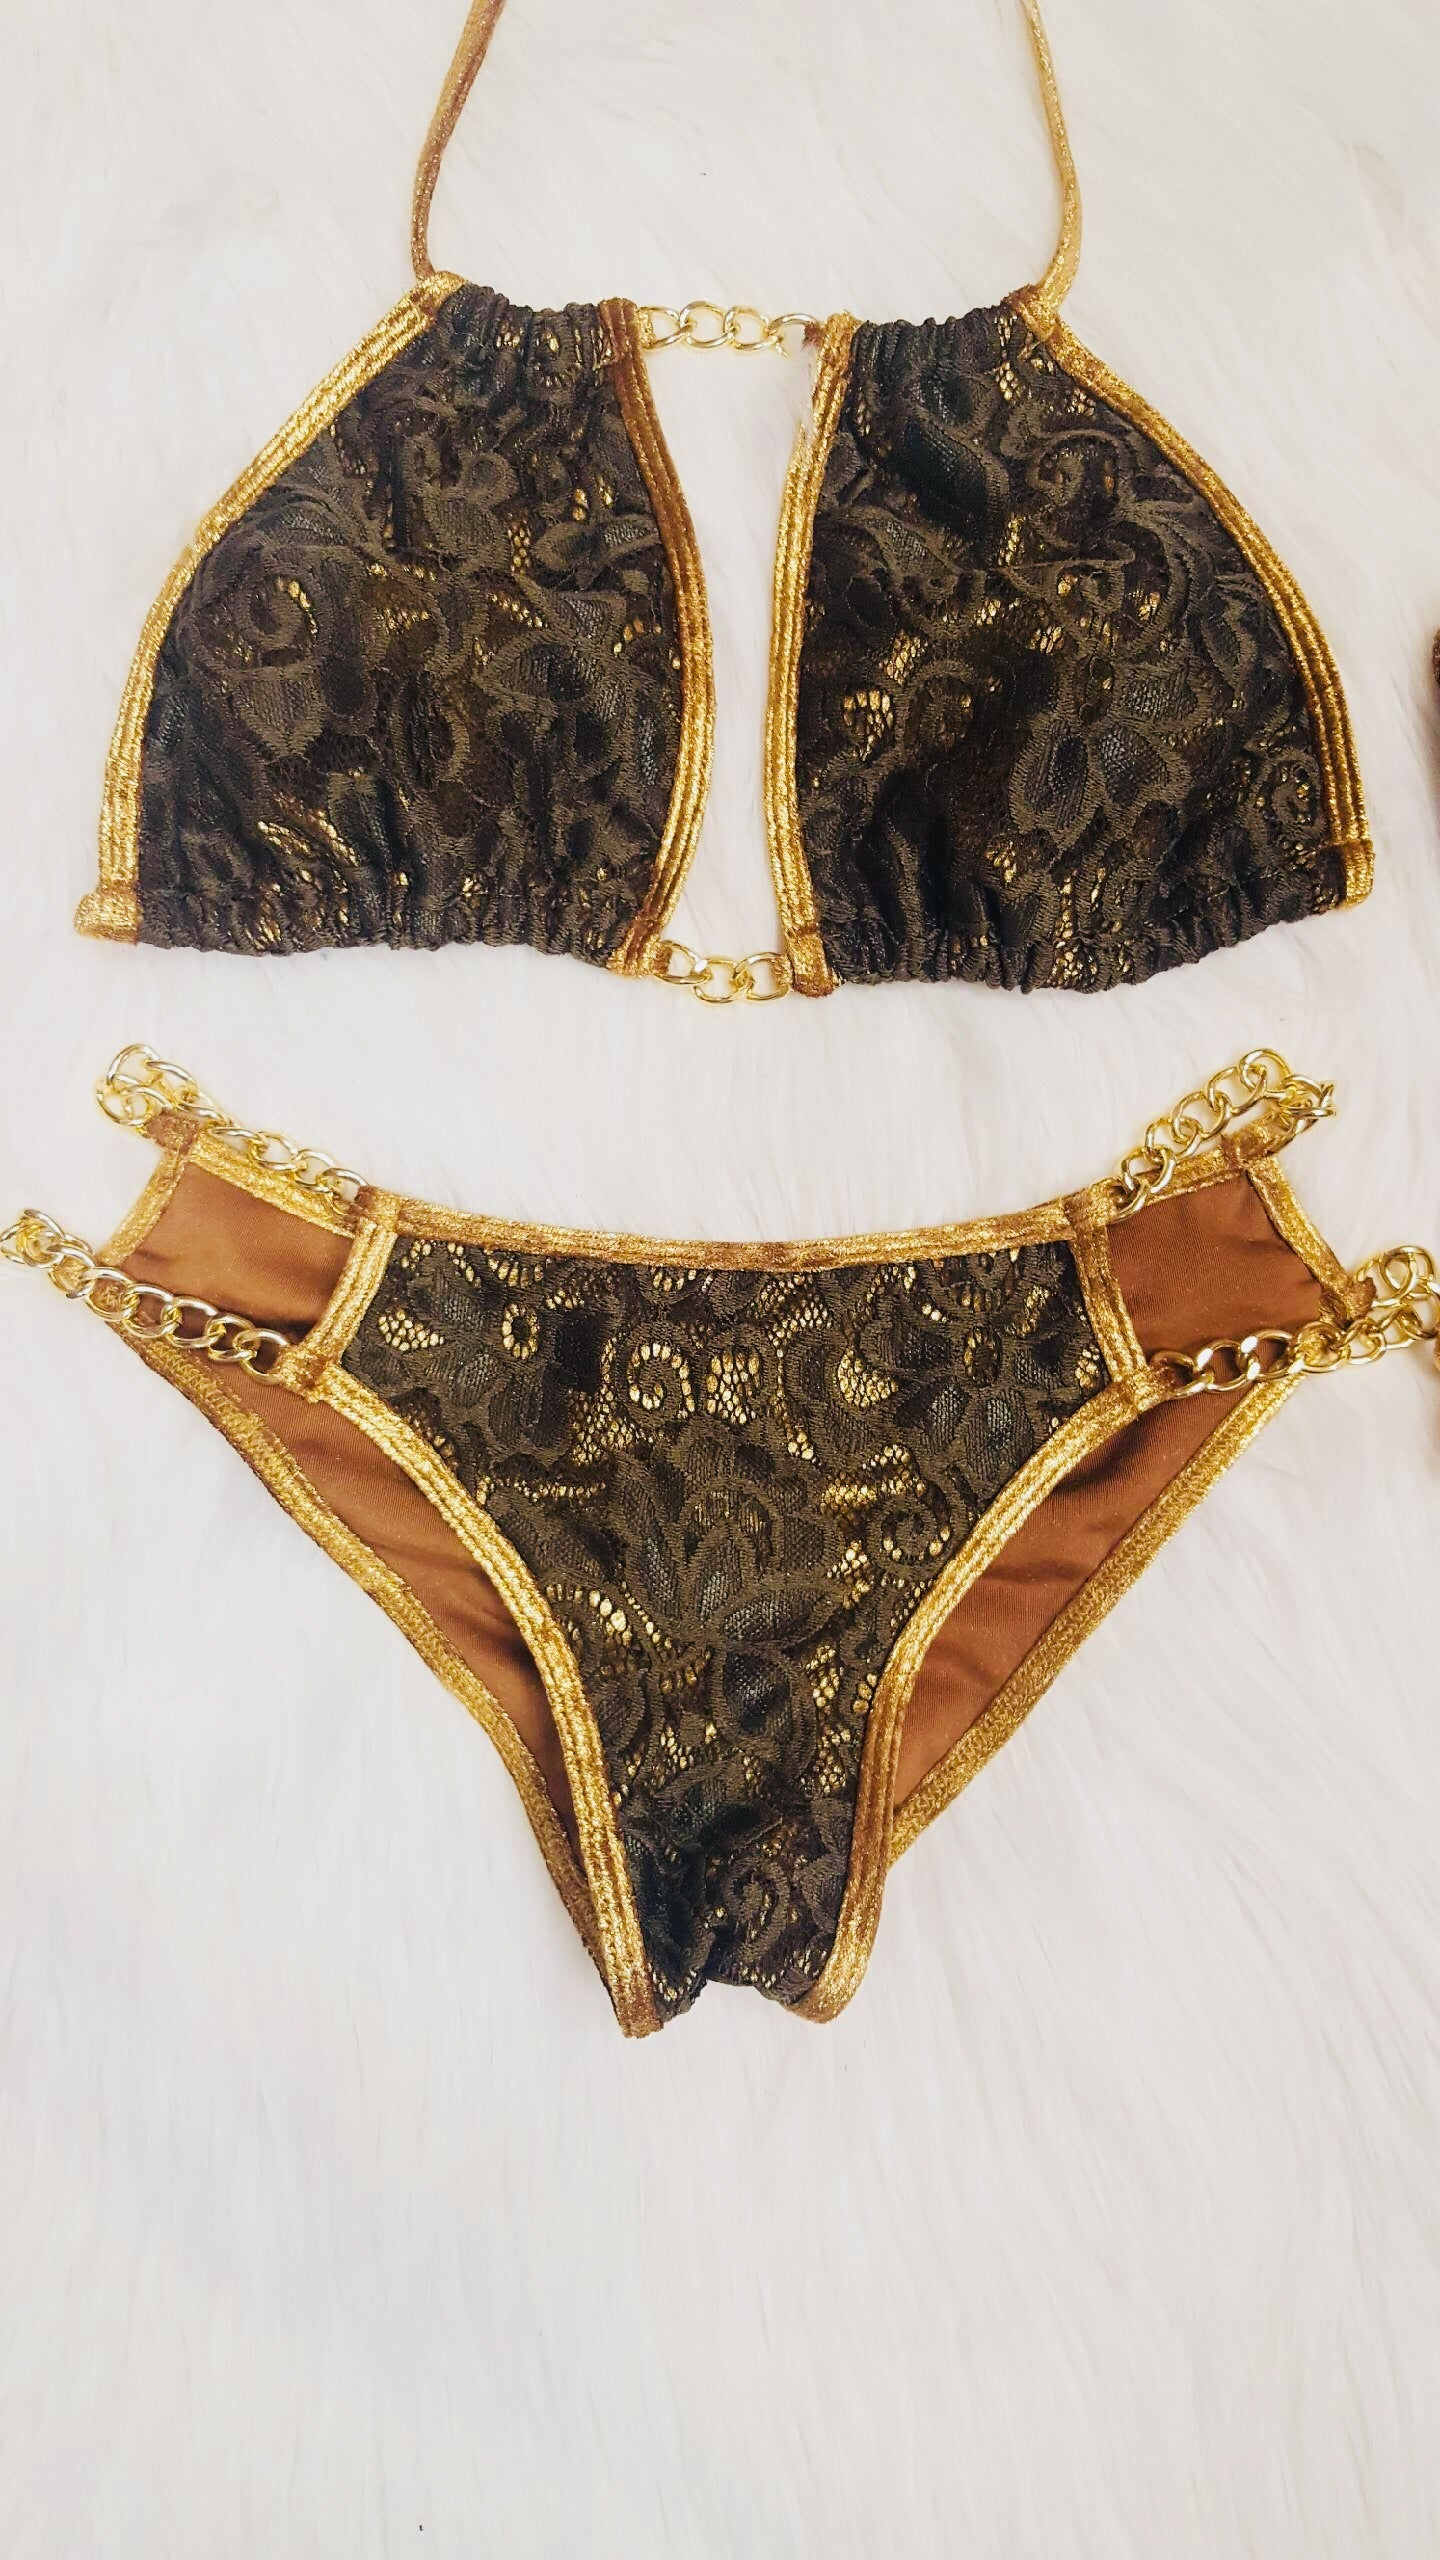 Gold/ Green chain bikini